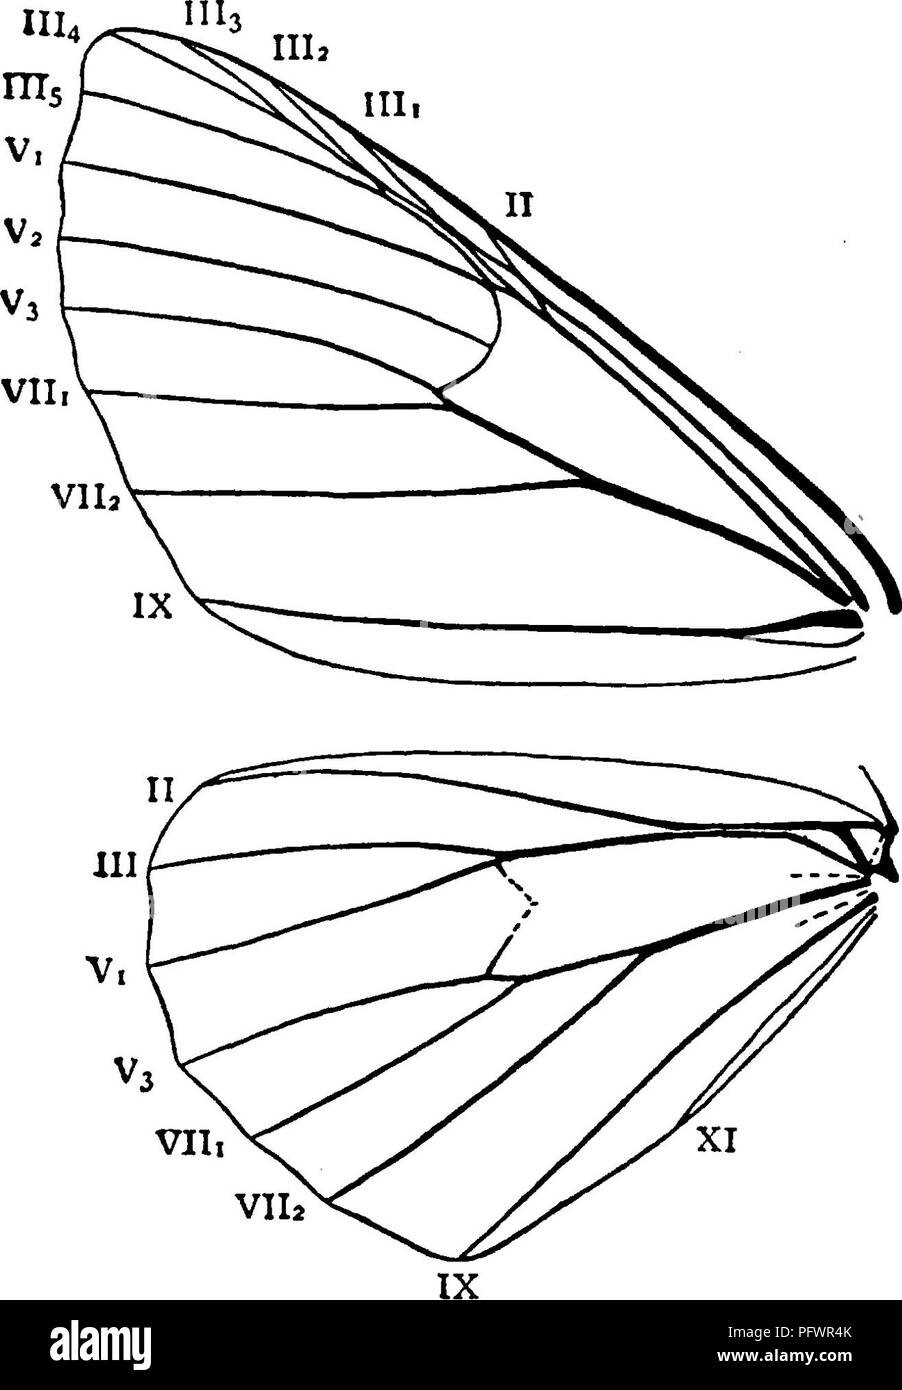 . A manual for the study of insects. Insects. LEPIDOPTERA. 271 these worms from the sharp-eyed birds. If so, we should have been still more interested in them; and we should have been even more so could some one have told us of the transformation of these loopers first into pupae and then into beautiful moths. But in those days comparatively few people thought it worth while to study insects. The larvae of Geometrids have as a rule only the last two pairs of prolegs well developed ; and hence, as the middle part of the body is not supported, they are unable to walk in the way that other caterp Stock Photo